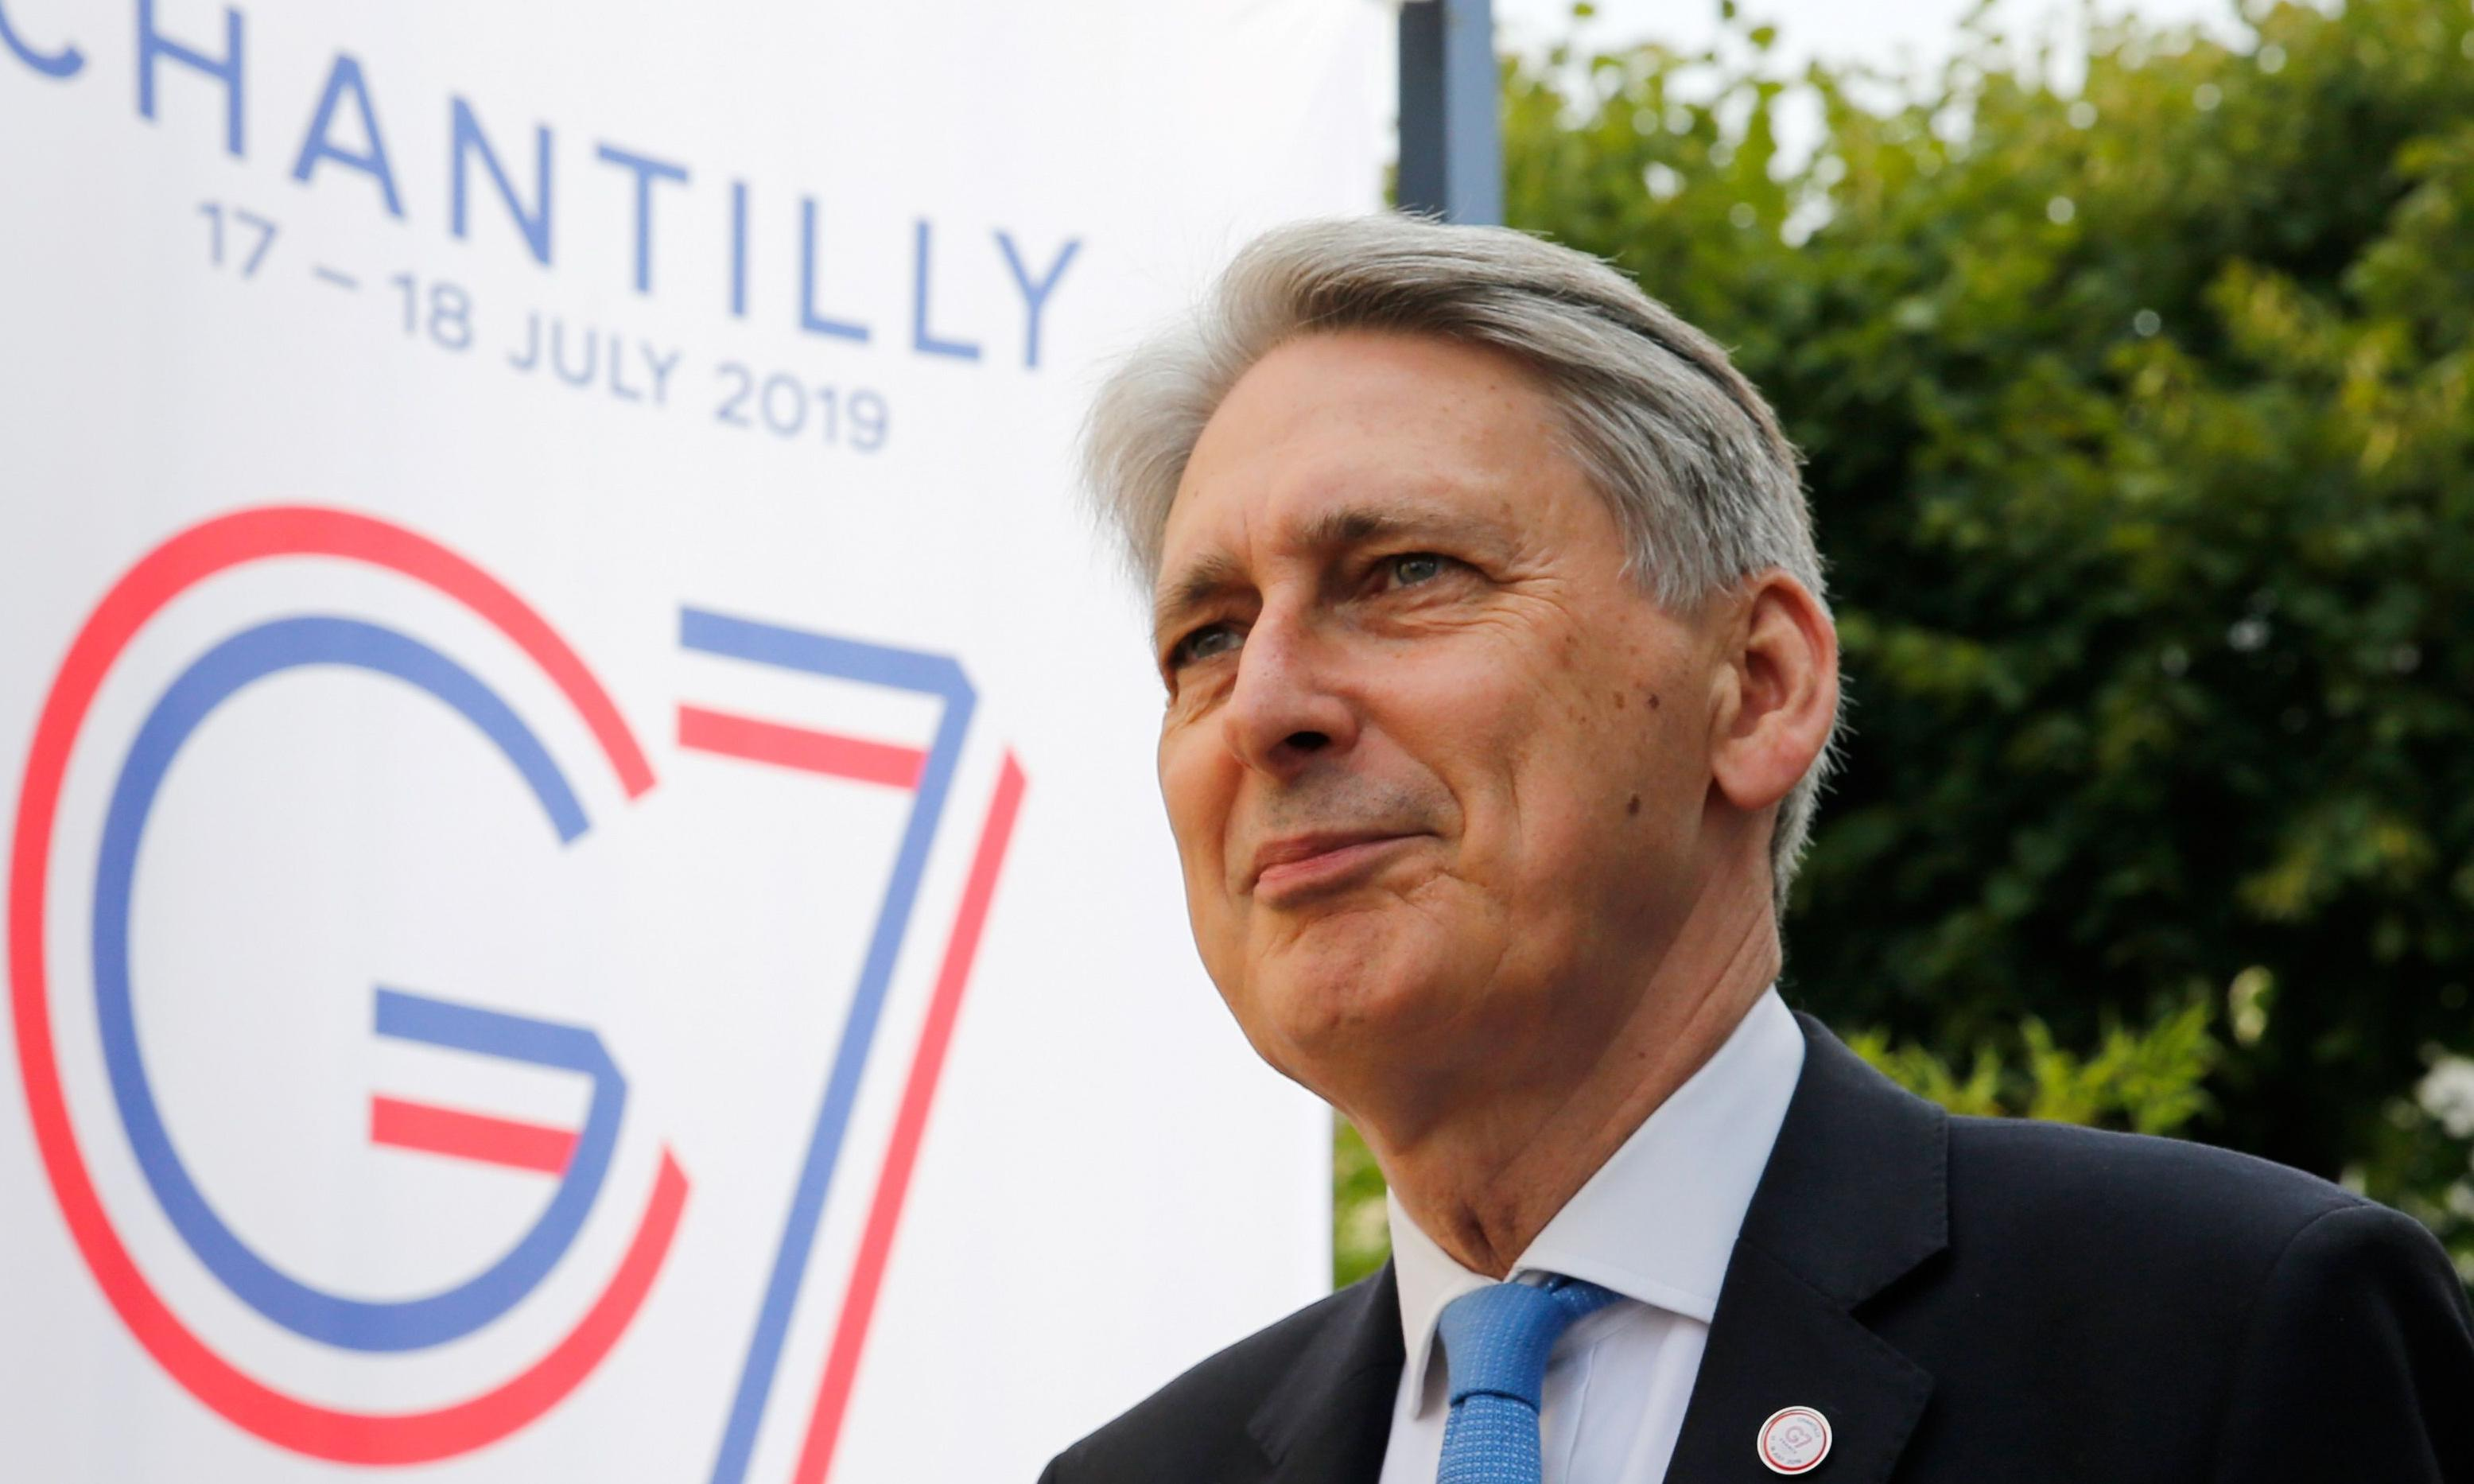 Philip Hammond signals he could vote to bring down Boris Johnson